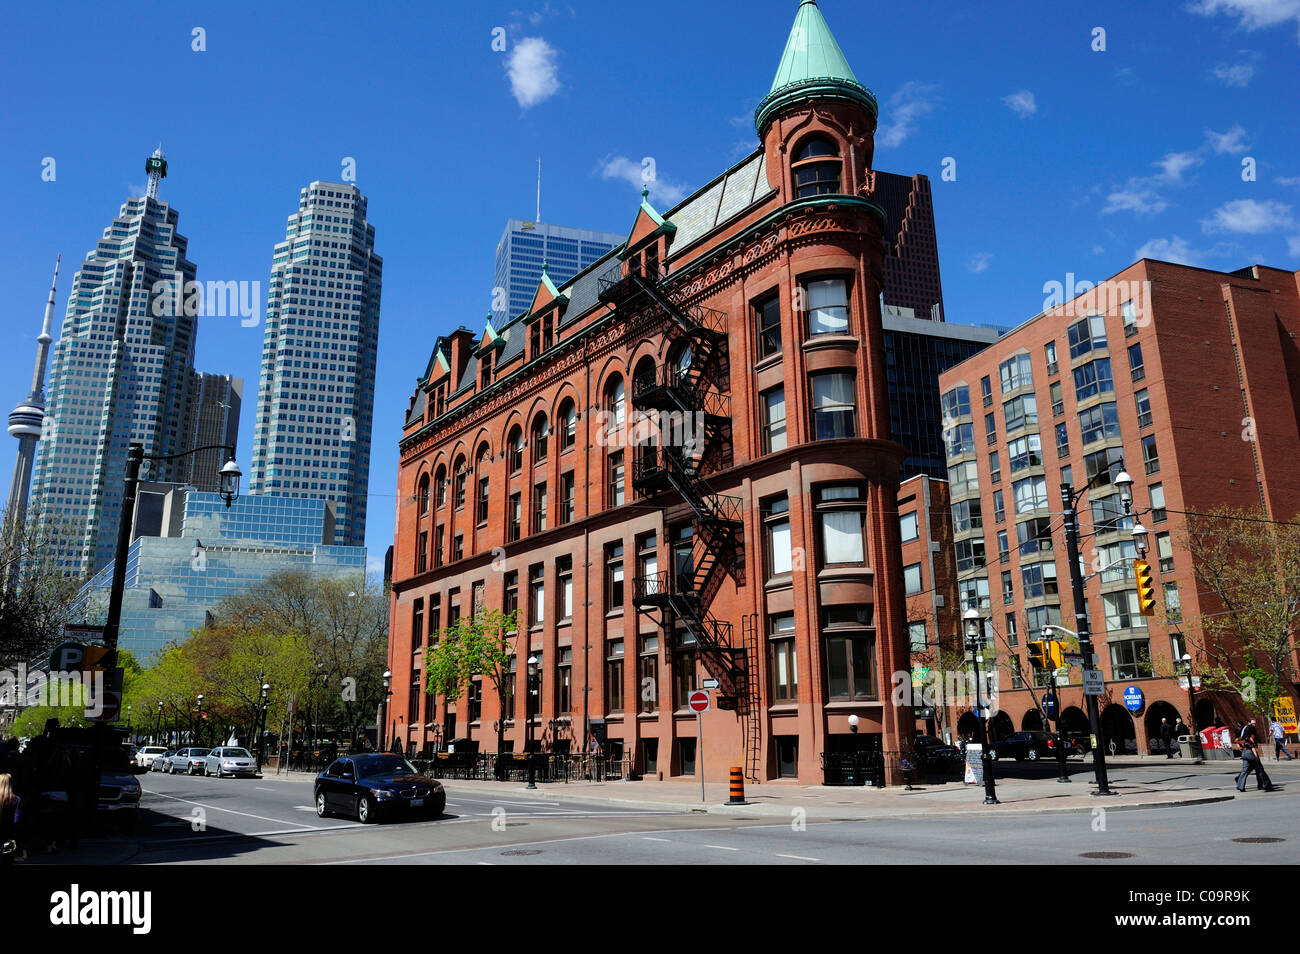 Junction of Front and Wellington Street, Toronto, Ontario, Canada - Stock Image